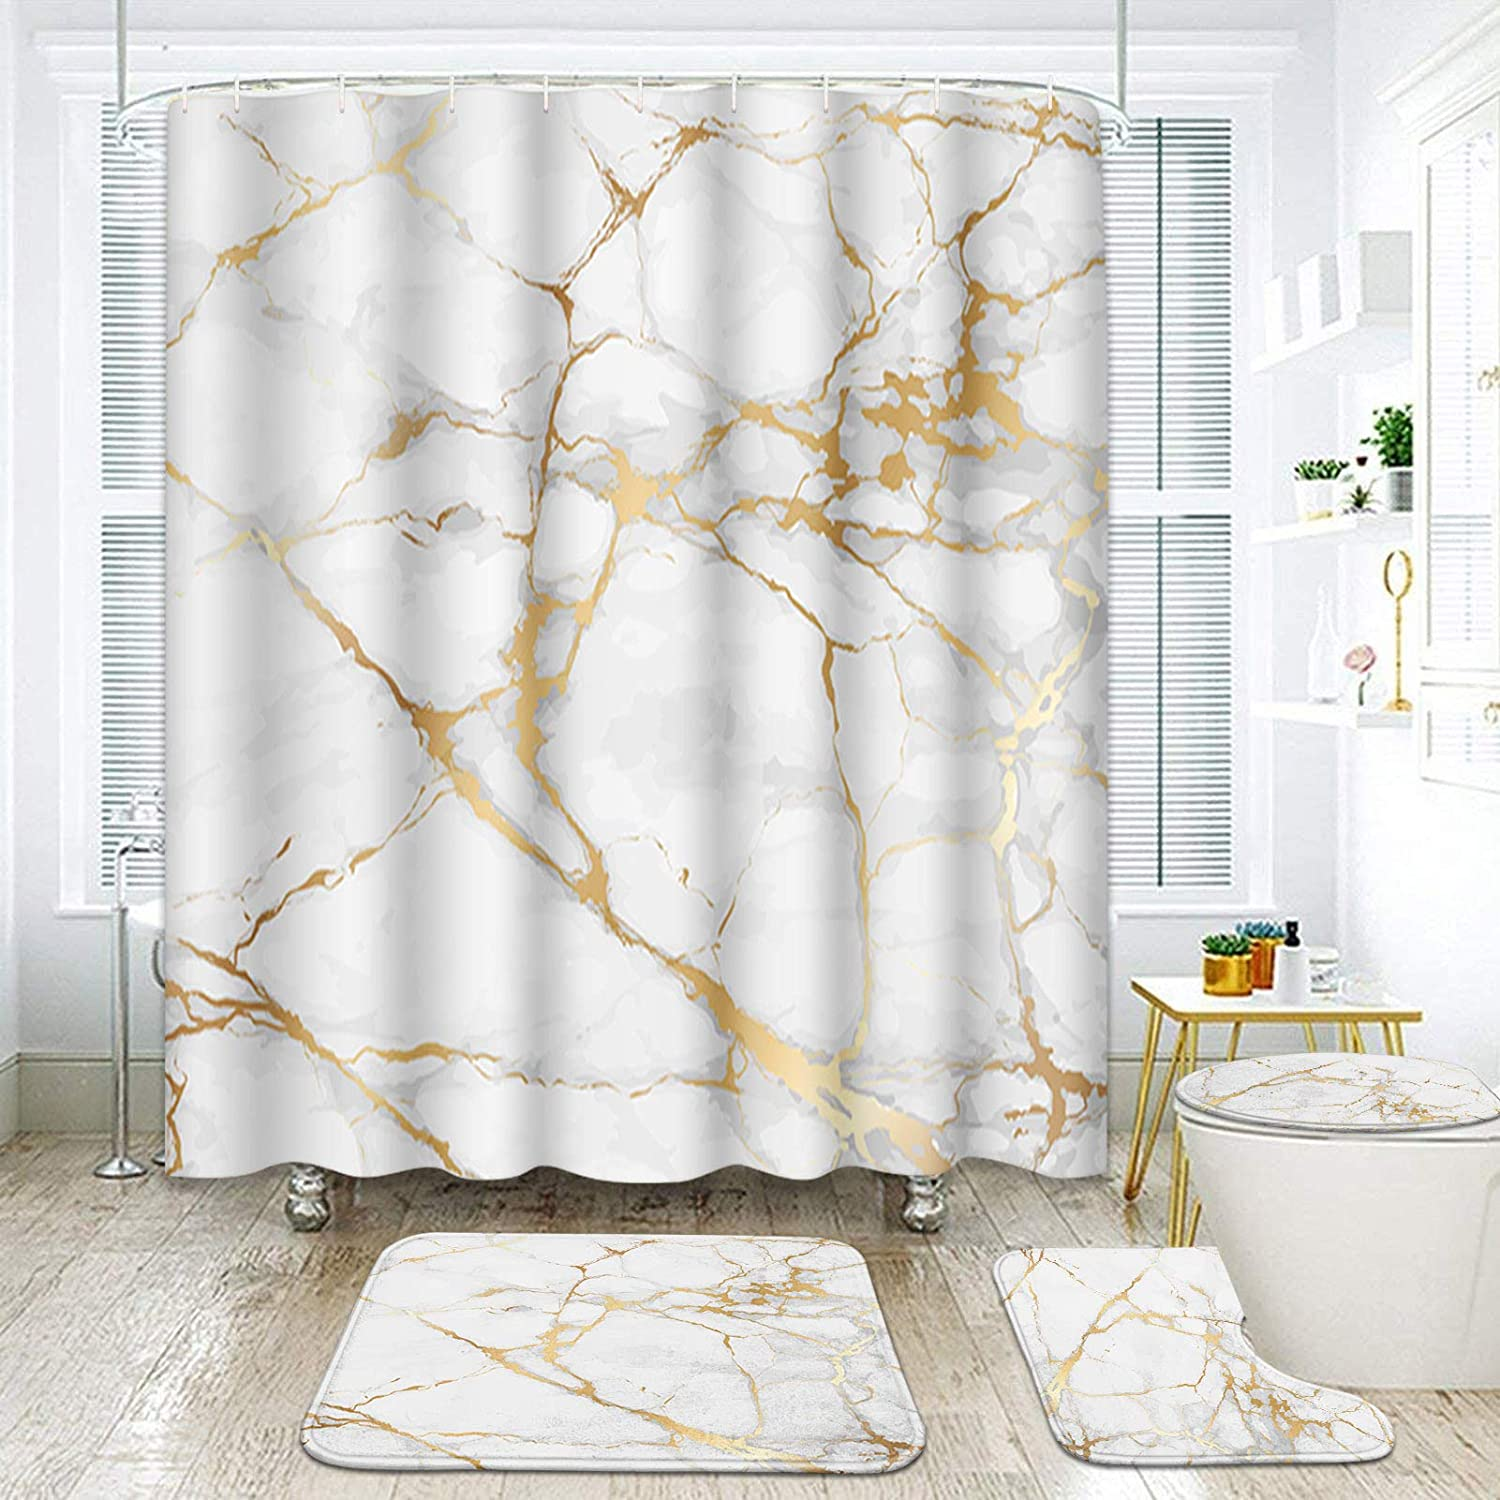 ArtSocket 4 Pcs Shower Curtain Set Marble Gold White Black Geometric Rose Stone Abstract Modern Vintage White Golden with Non-Slip Rugs Toilet Lid Cover and Bath Mat Bathroom Decor Set 72